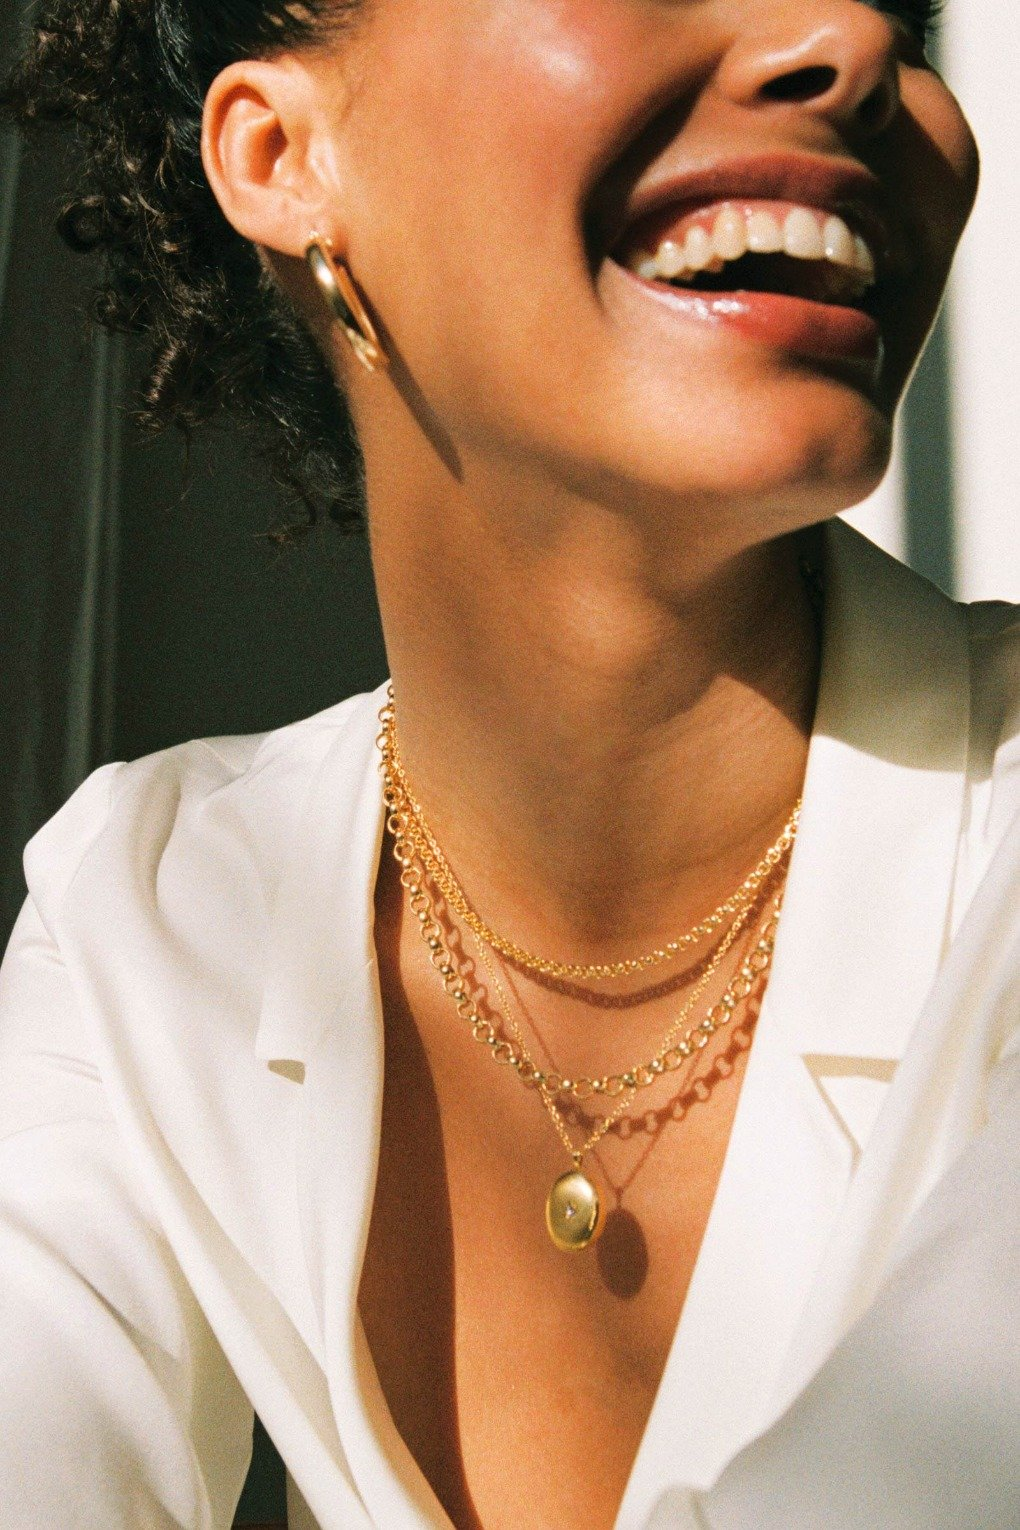 a young woman wearing a matching set of three gold filled necklaces